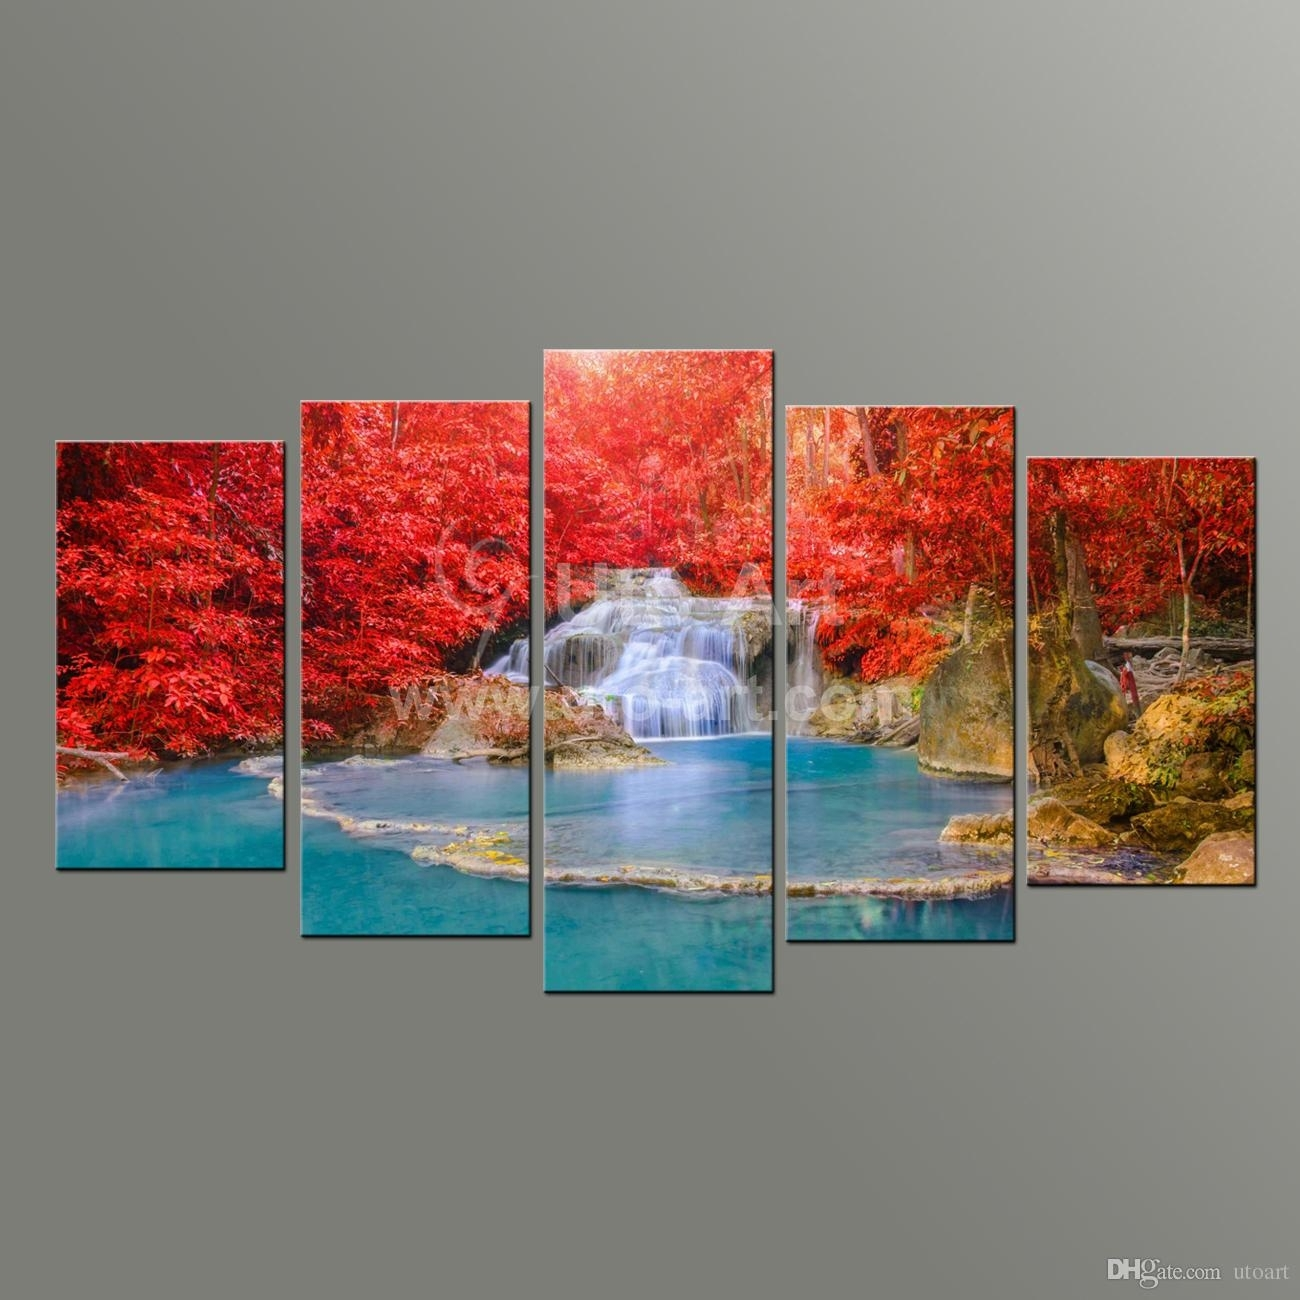 2018 5 Panel Wall Art Paintings Landscaping Waterfall Picture And With Current Wall Art Paintings (View 2 of 20)